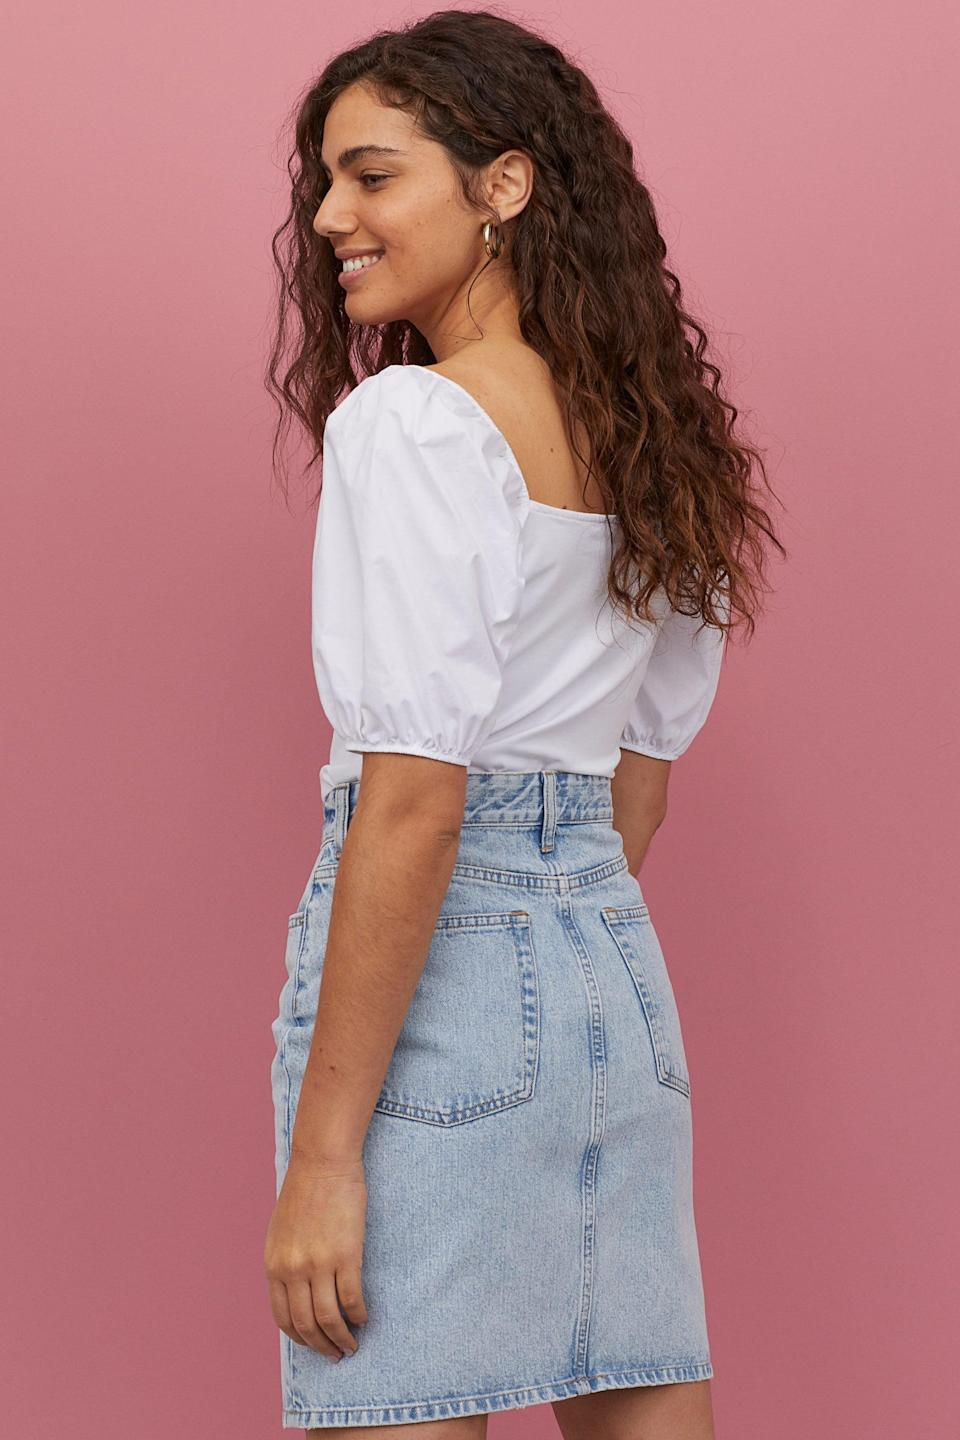 "<p>This <a href=""https://www.popsugar.com/buy/HampM-Denim-Skirt-581999?p_name=H%26amp%3BM%20Denim%20Skirt&retailer=www2.hm.com&pid=581999&price=25&evar1=fab%3Aus&evar9=35329485&evar98=https%3A%2F%2Fwww.popsugar.com%2Ffashion%2Fphoto-gallery%2F35329485%2Fimage%2F47550205%2FHM-Denim-Skirt&list1=shopping%2Cdenim%2Csummer%20fashion%2Cfashion%20shopping&prop13=mobile&pdata=1"" class=""link rapid-noclick-resp"" rel=""nofollow noopener"" target=""_blank"" data-ylk=""slk:H&amp;M Denim Skirt"">H&amp;M Denim Skirt</a> ($25) is at the top of our wish list.</p>"